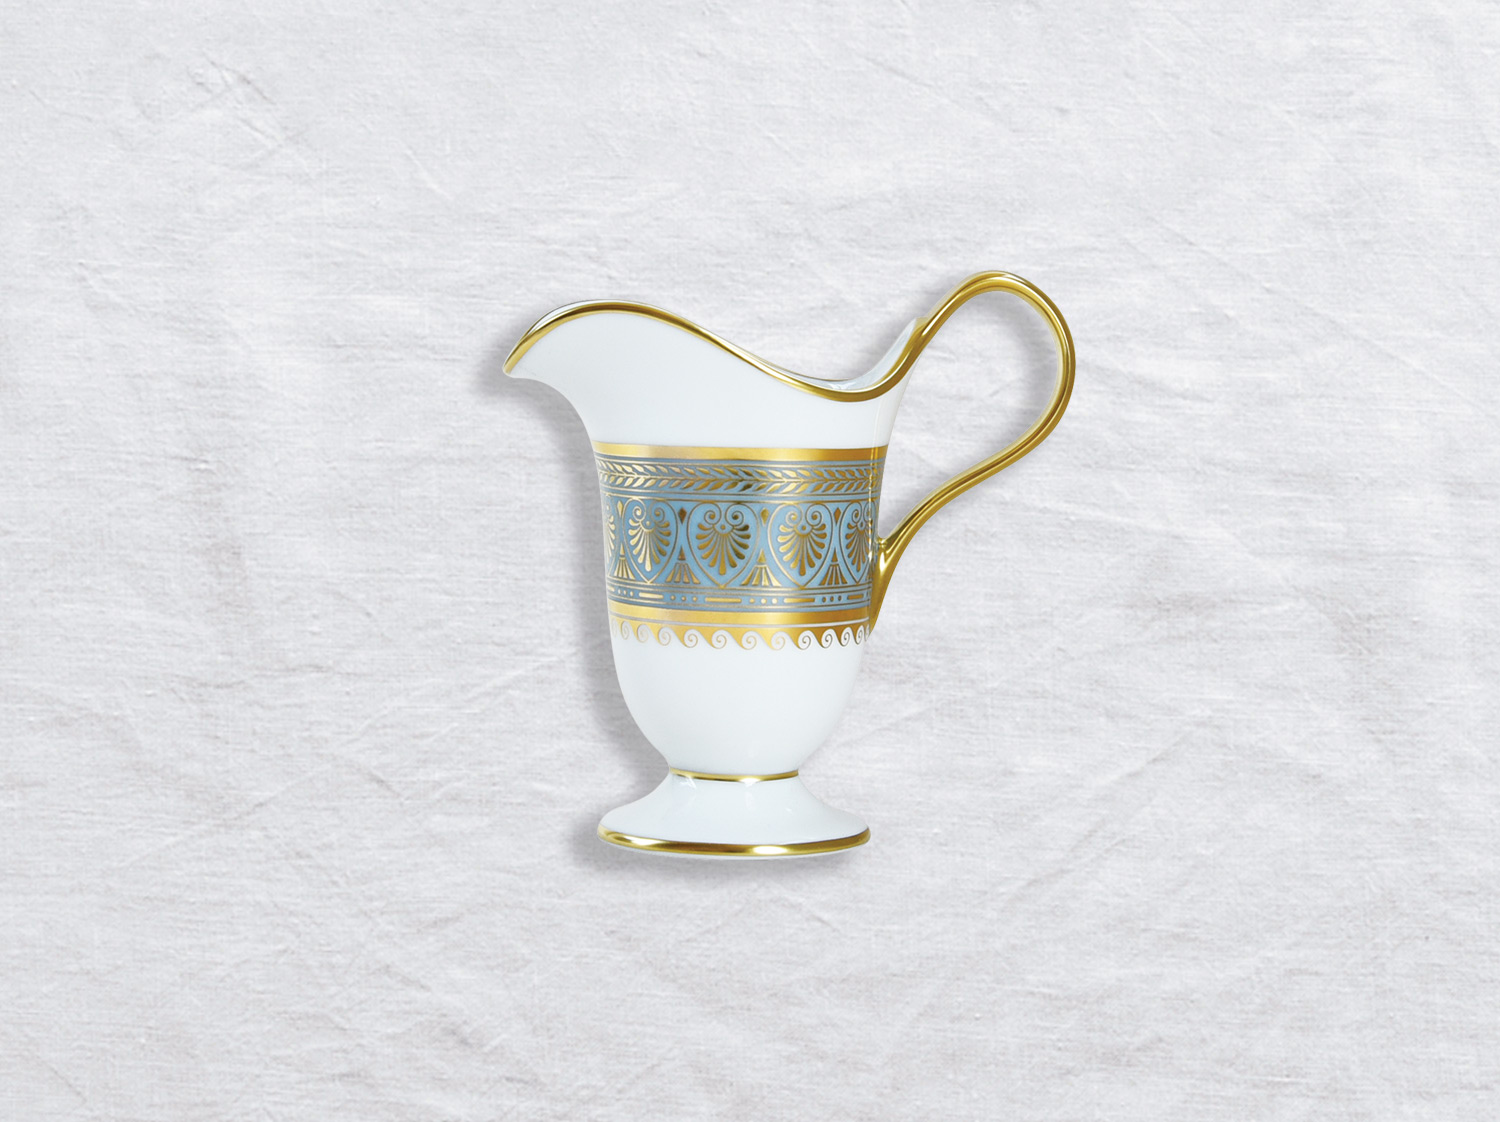 Crémier 6 tasses en porcelaine de la collection Elysee Bernardaud